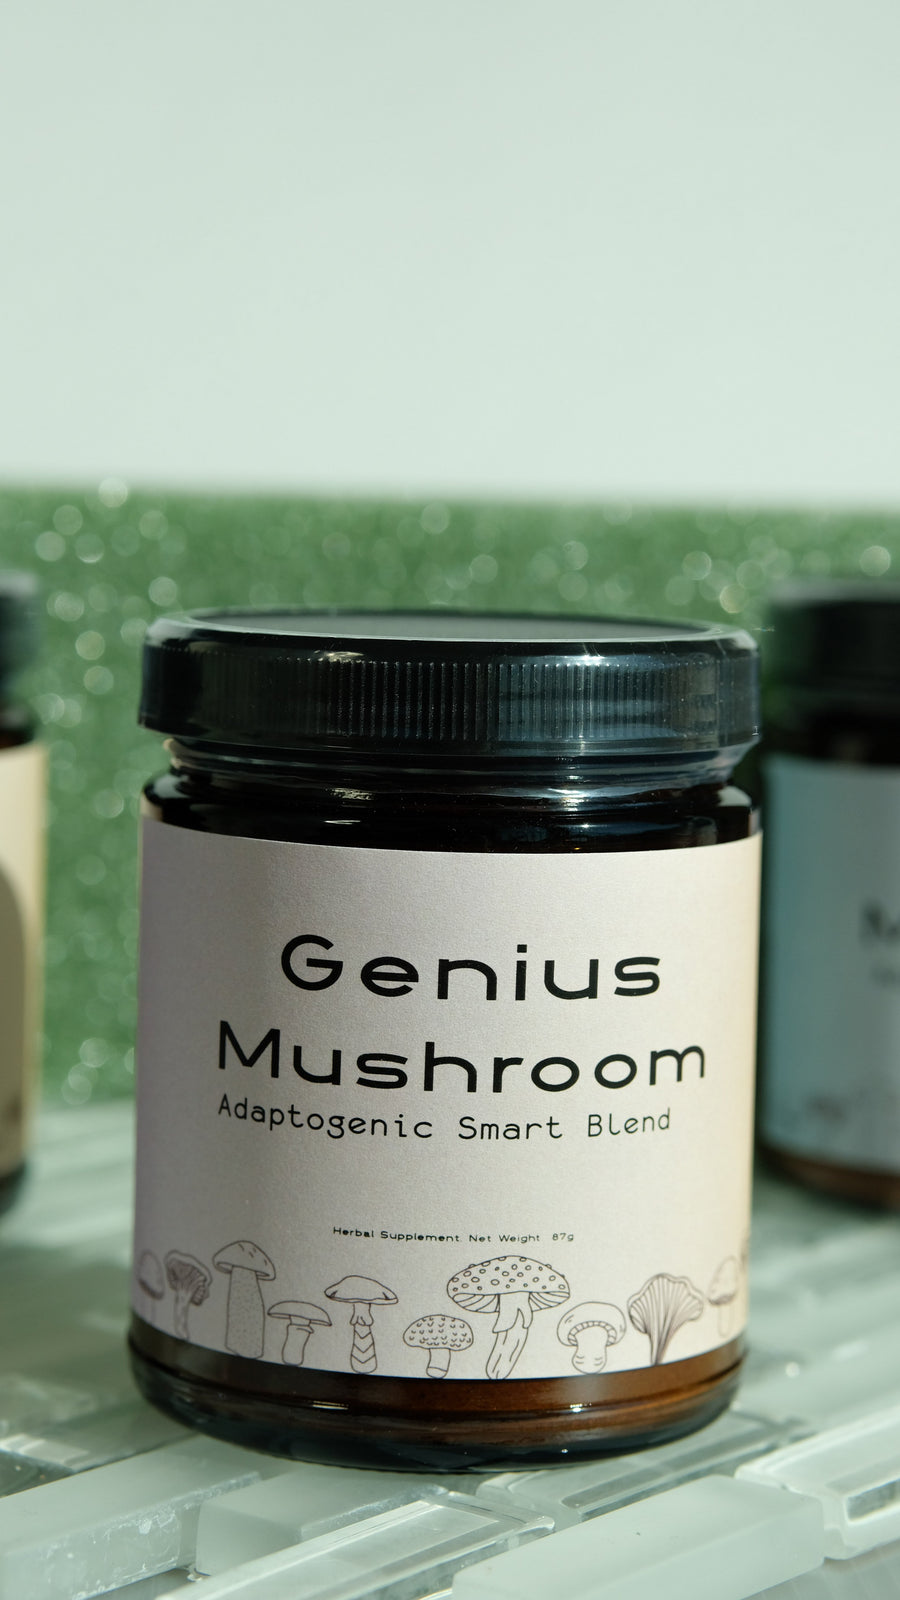 Genius Mushroom Adaptogenic Smart Blend